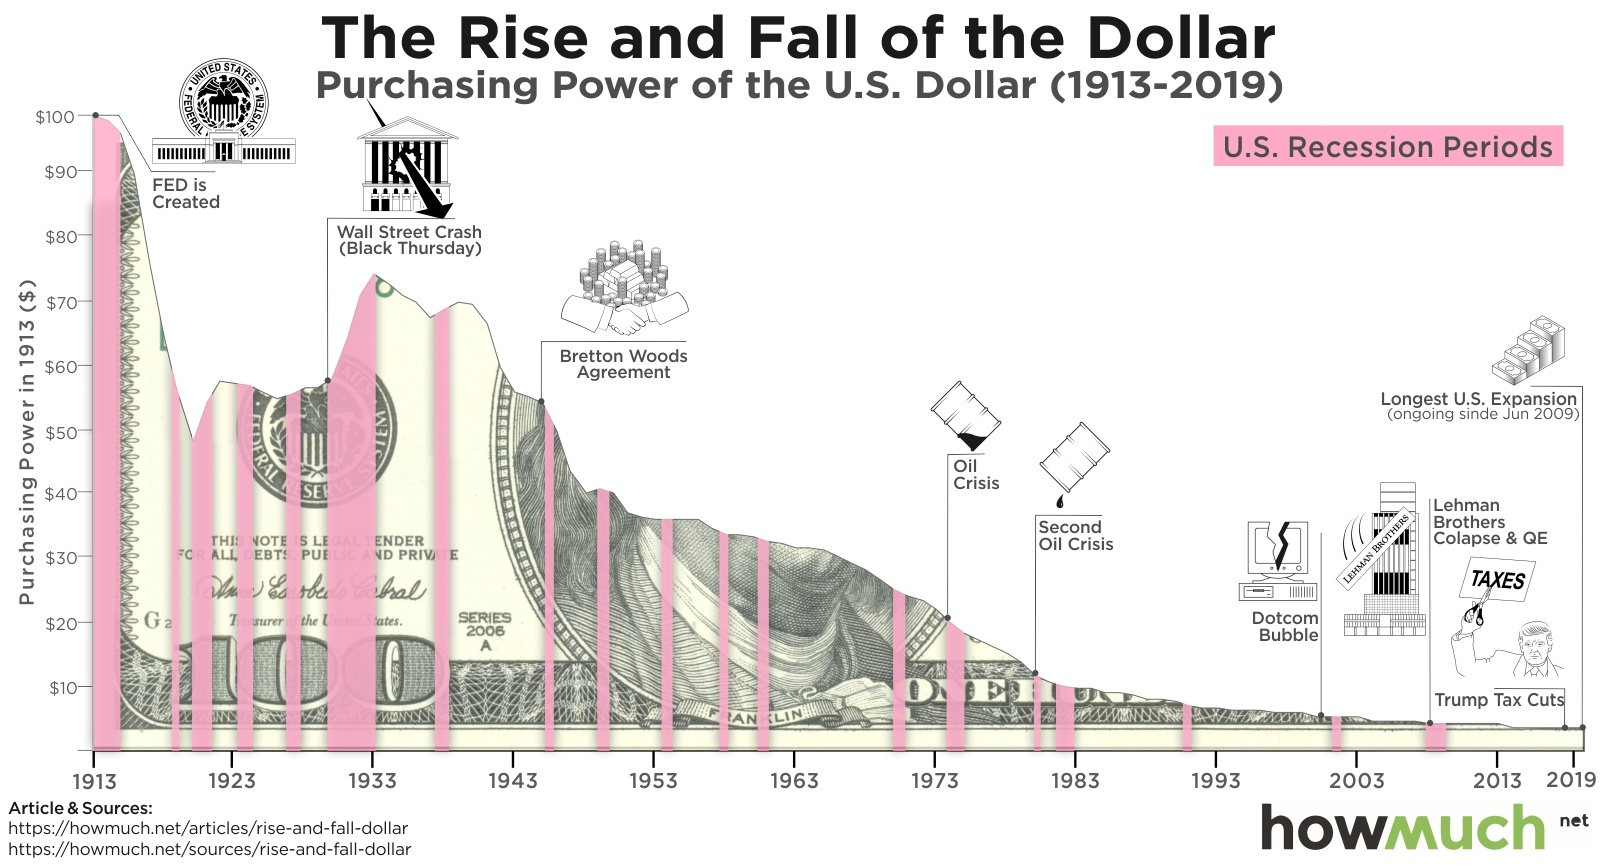 us dollar inflation chart Full history How Much SD Bullion